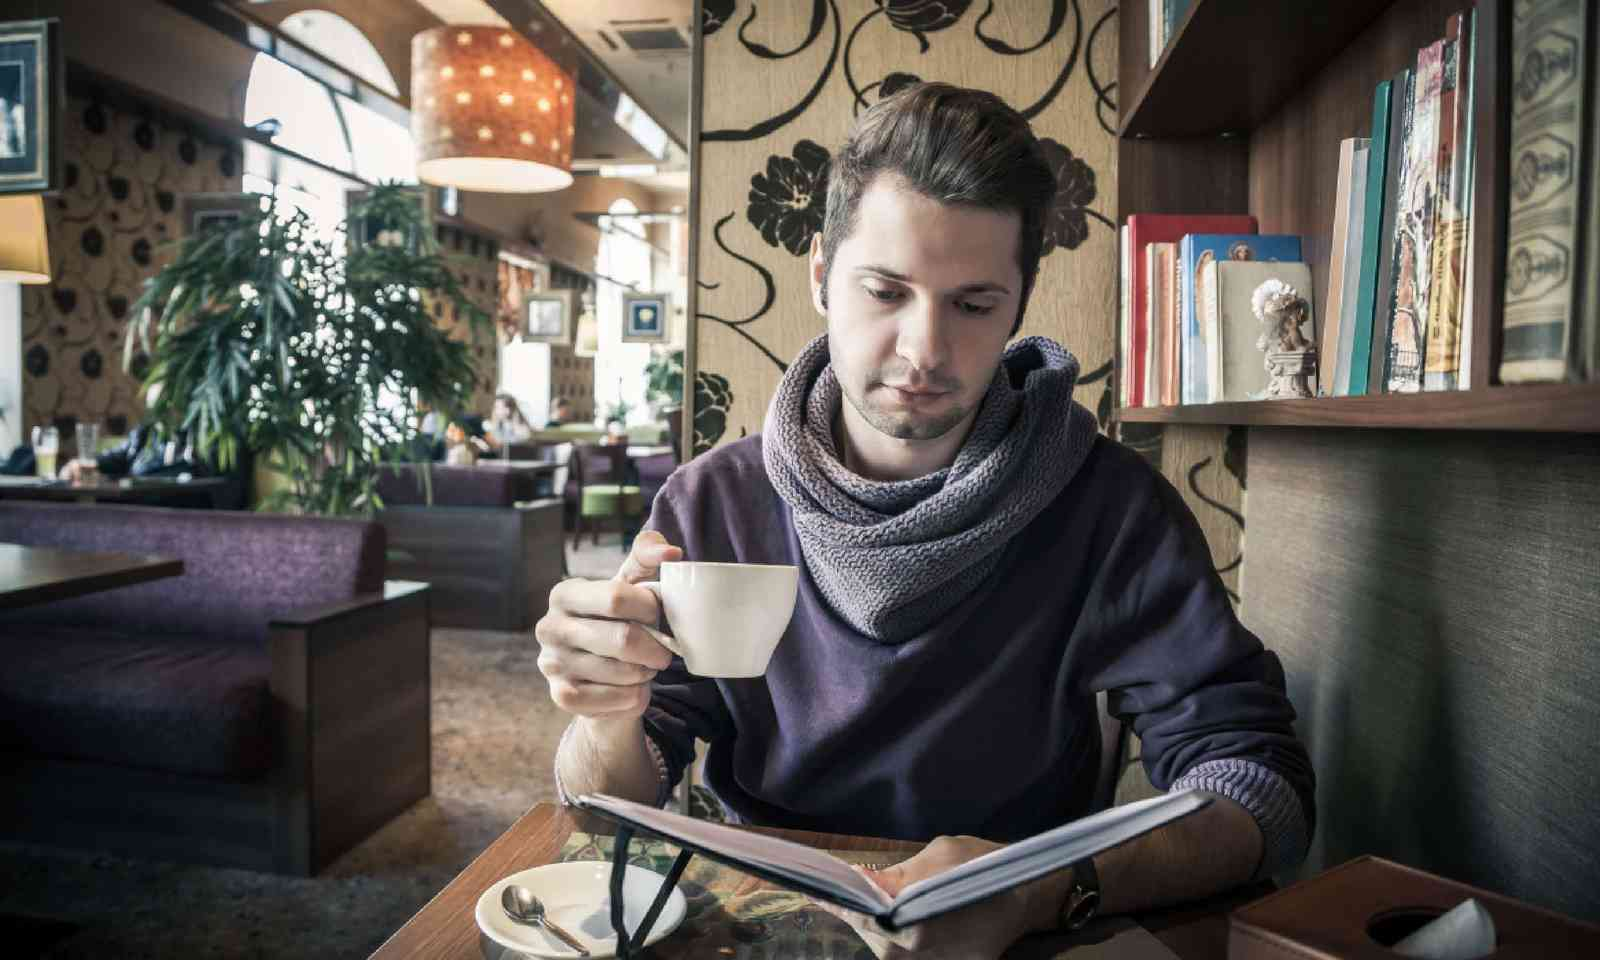 Reading in a cafe (Shutterstock)